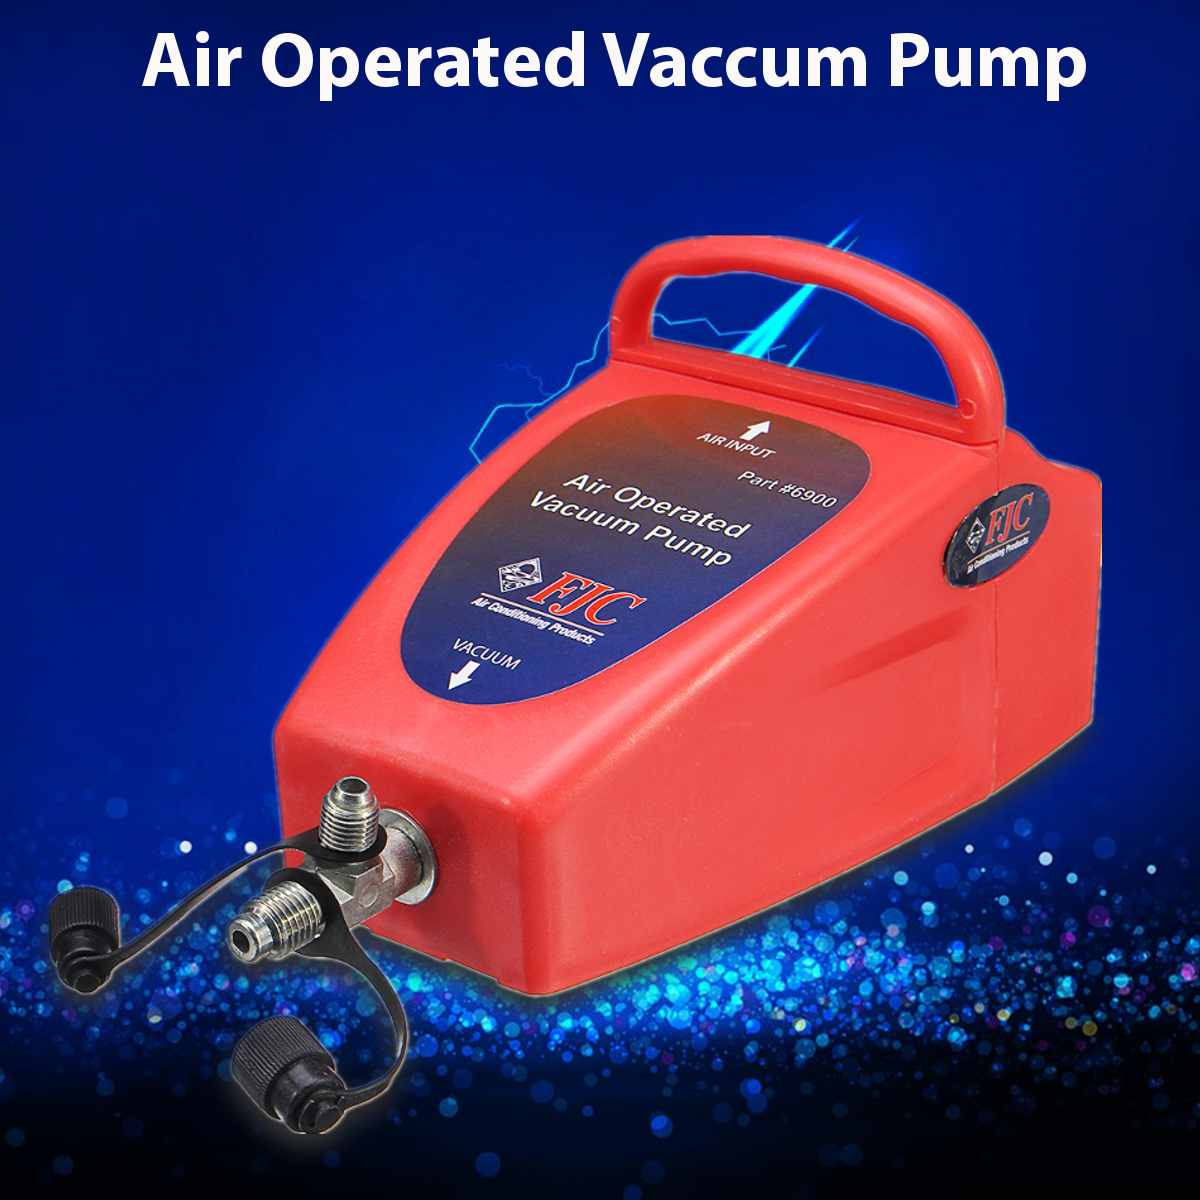 4.2CFM A/C Air Conditioning System Tool Air Operated Vacuum Pump Auto 1/2